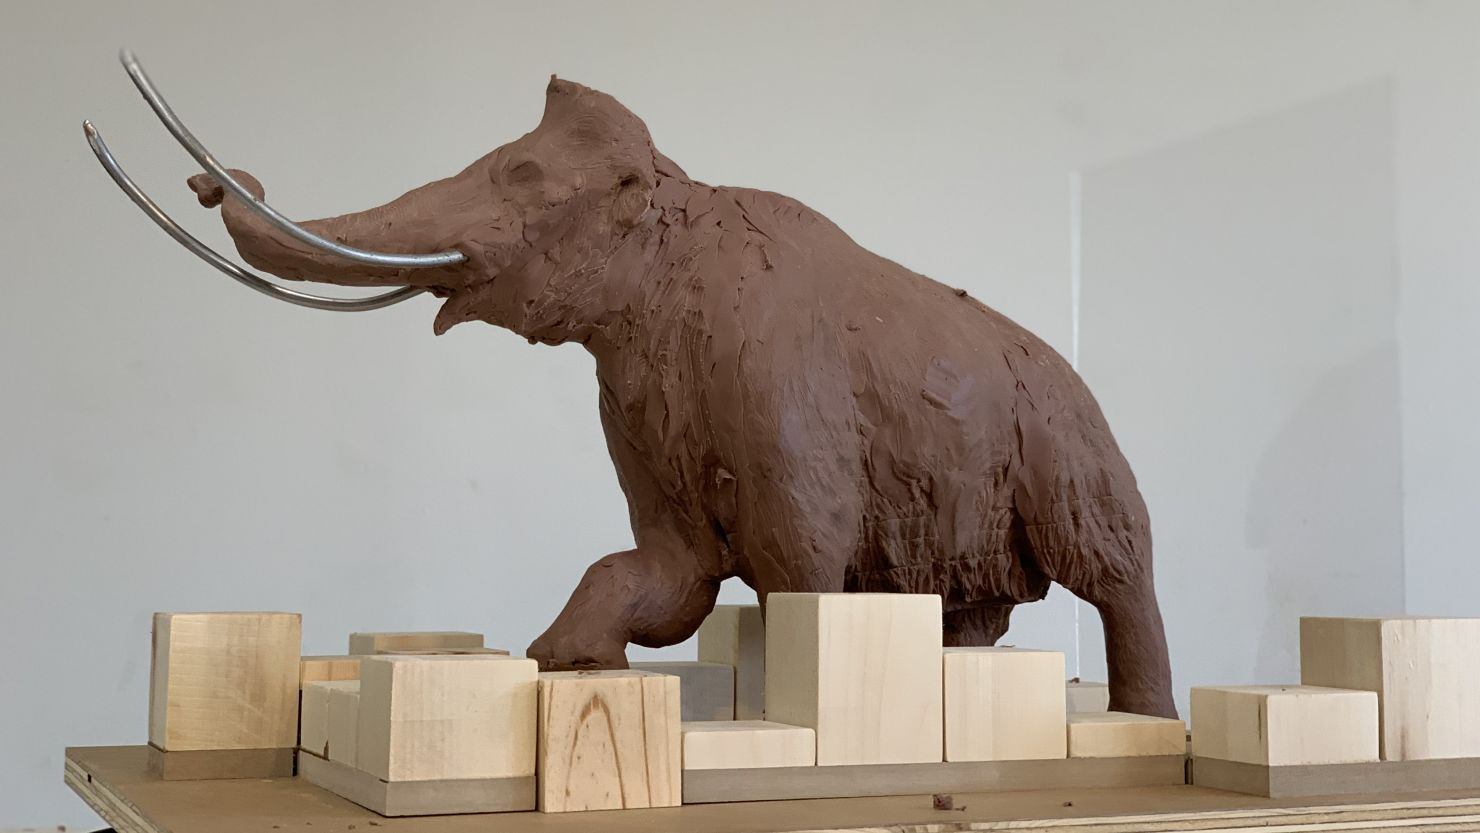 A clay maquette of a woolly mammoth